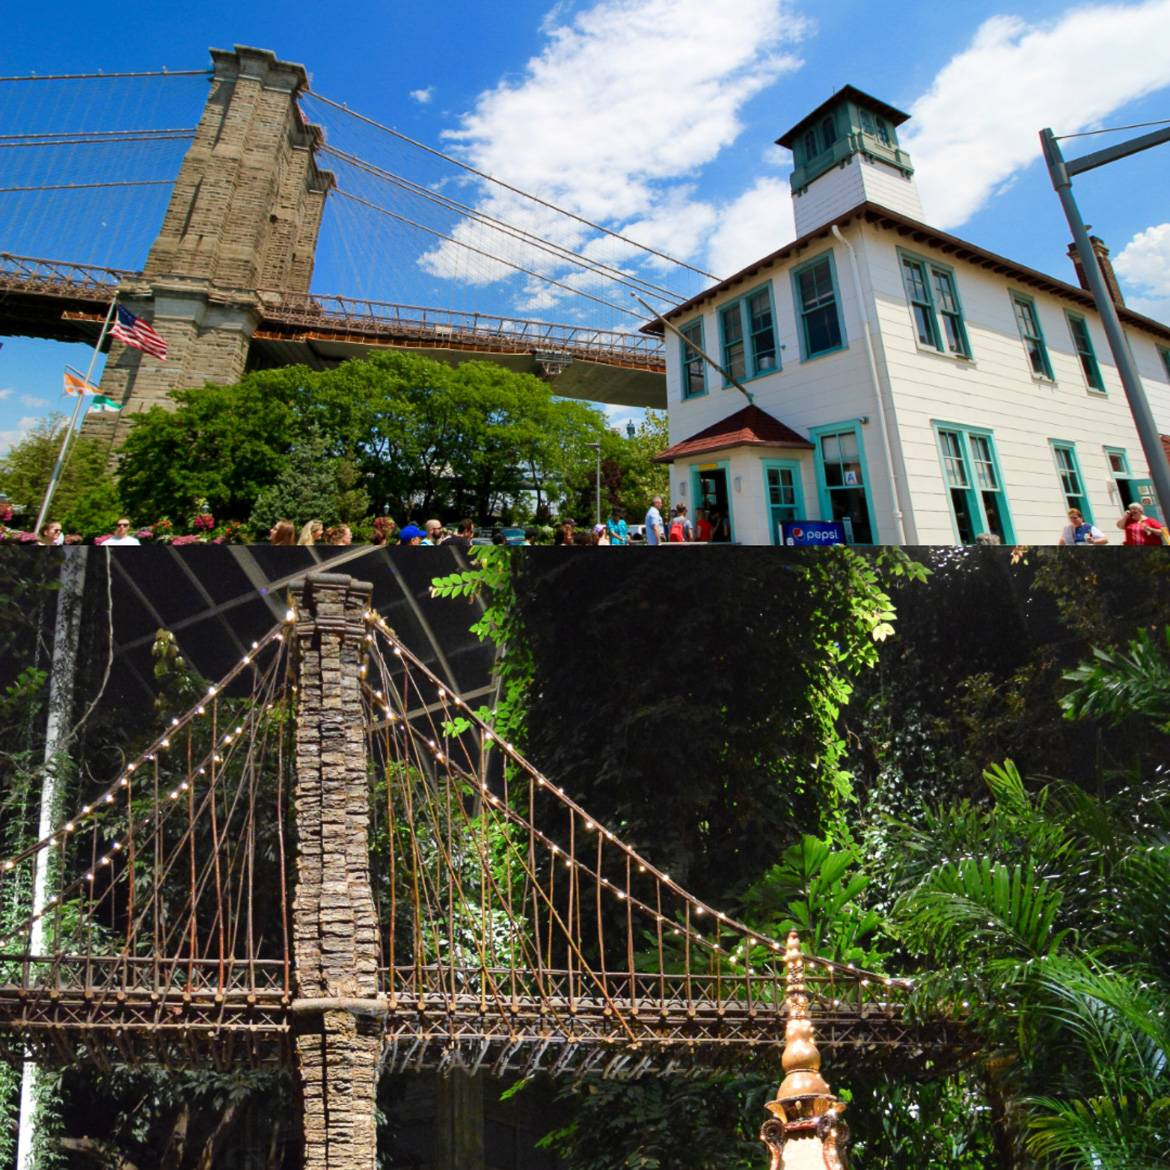 Image of a miniature replica of the Brooklyn Bridge and Image of the Brooklyn Bridge over the East River